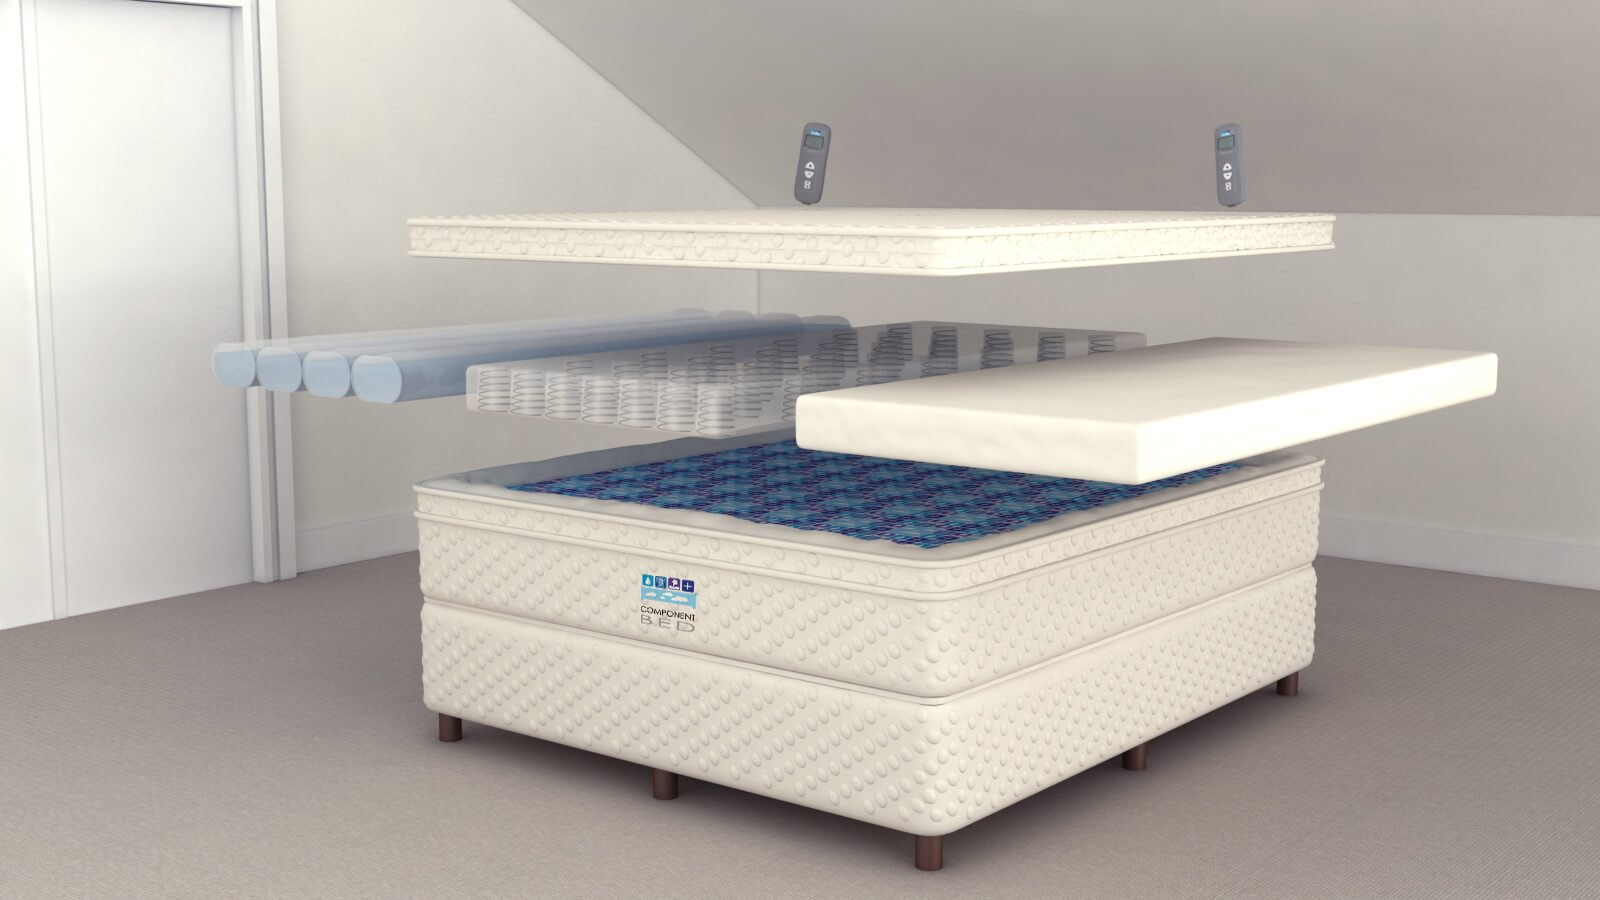 Cheap twin mattresses englander finale 10inch innerspring mattress enjoy a super soft u0026 Cheapest queen mattress